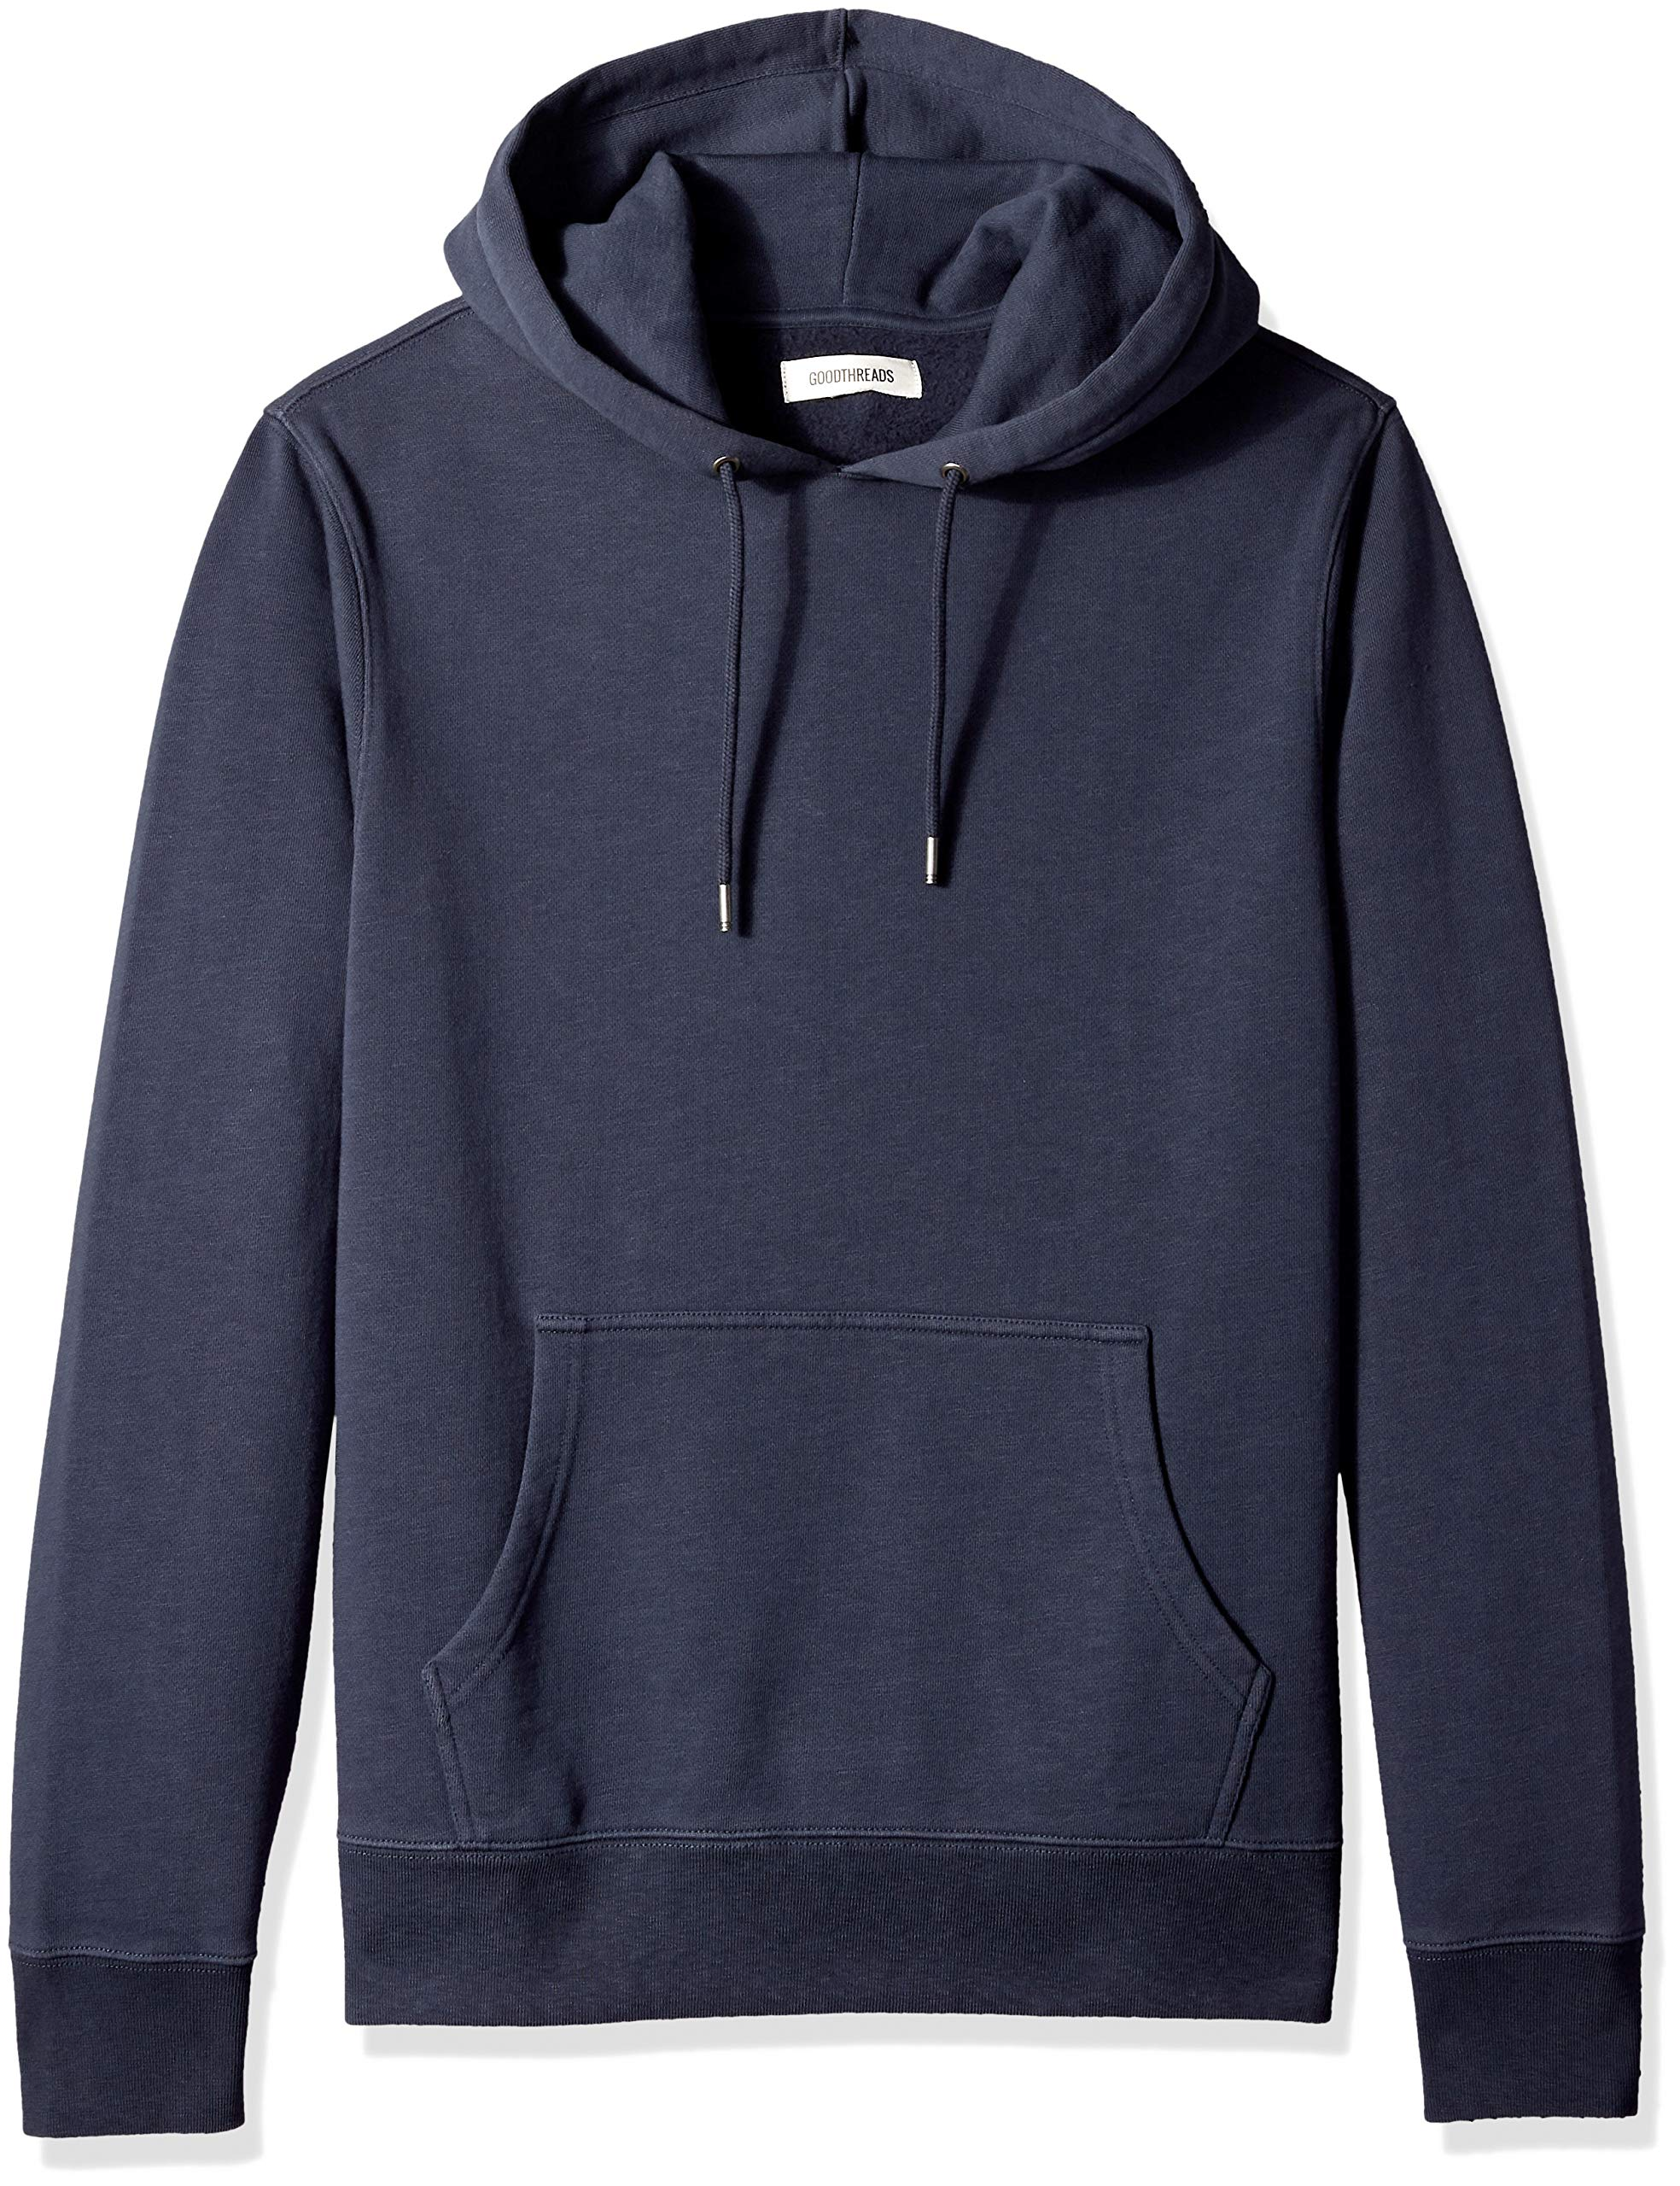 Amazon Brand - Goodthreads Men's Pullover Fleece Hoodie, Navy Eclipse, Large by Goodthreads